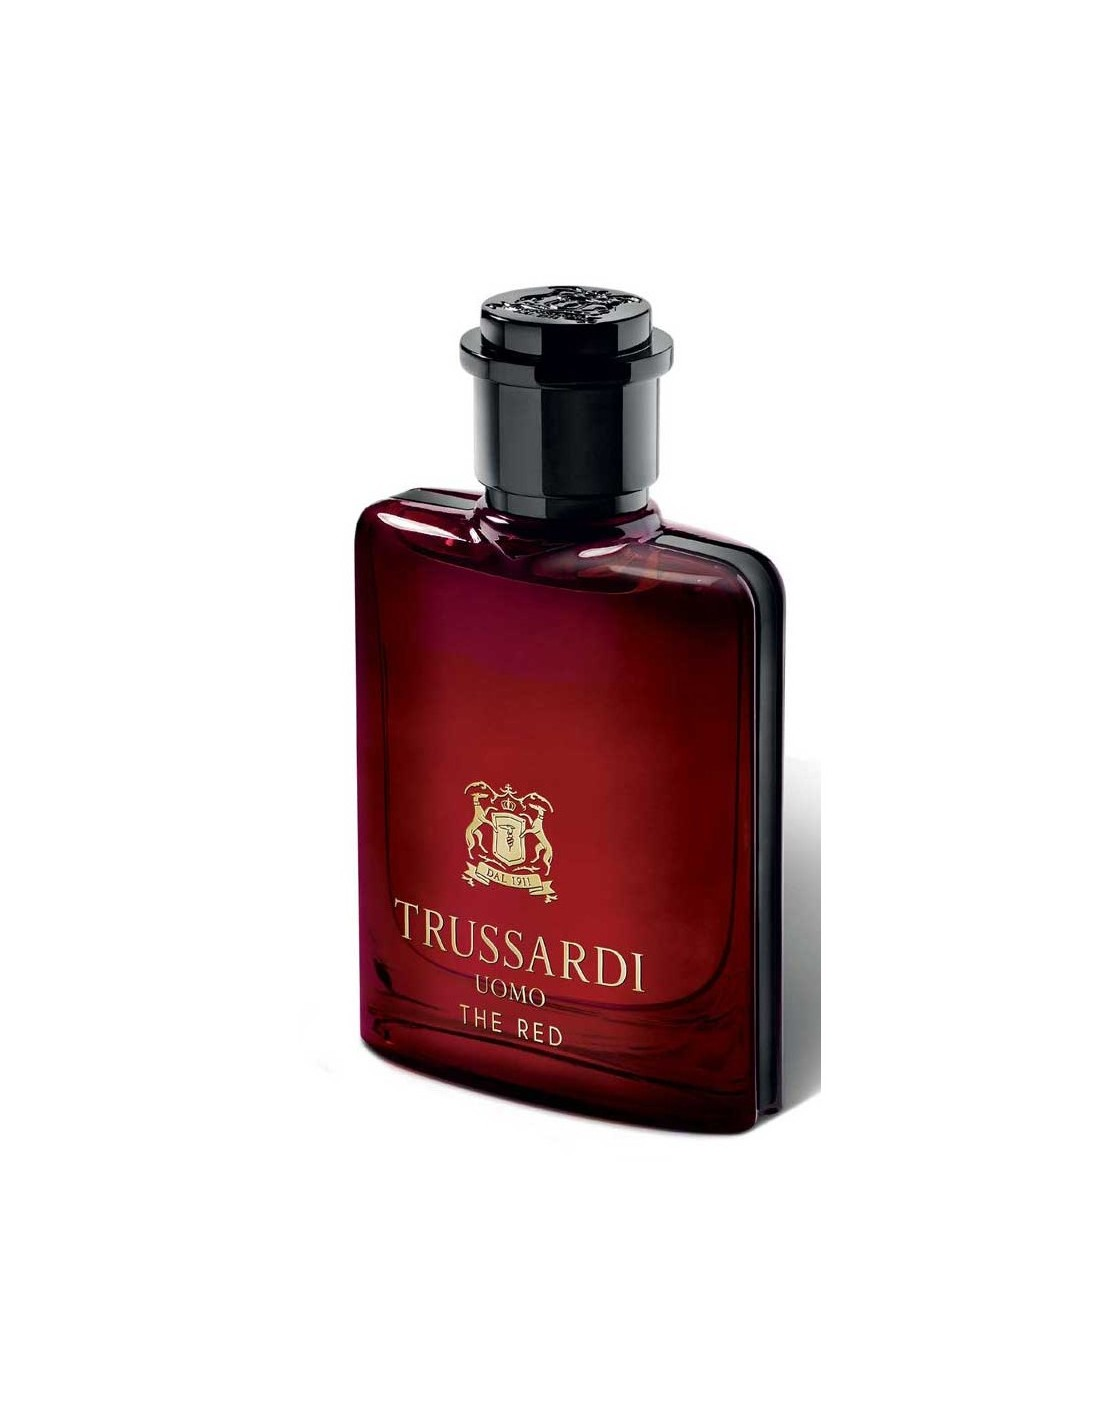 Trussardi Uomo The Red Eau de toilette 100 ml Spray - TESTER ... 8a4ad071b964